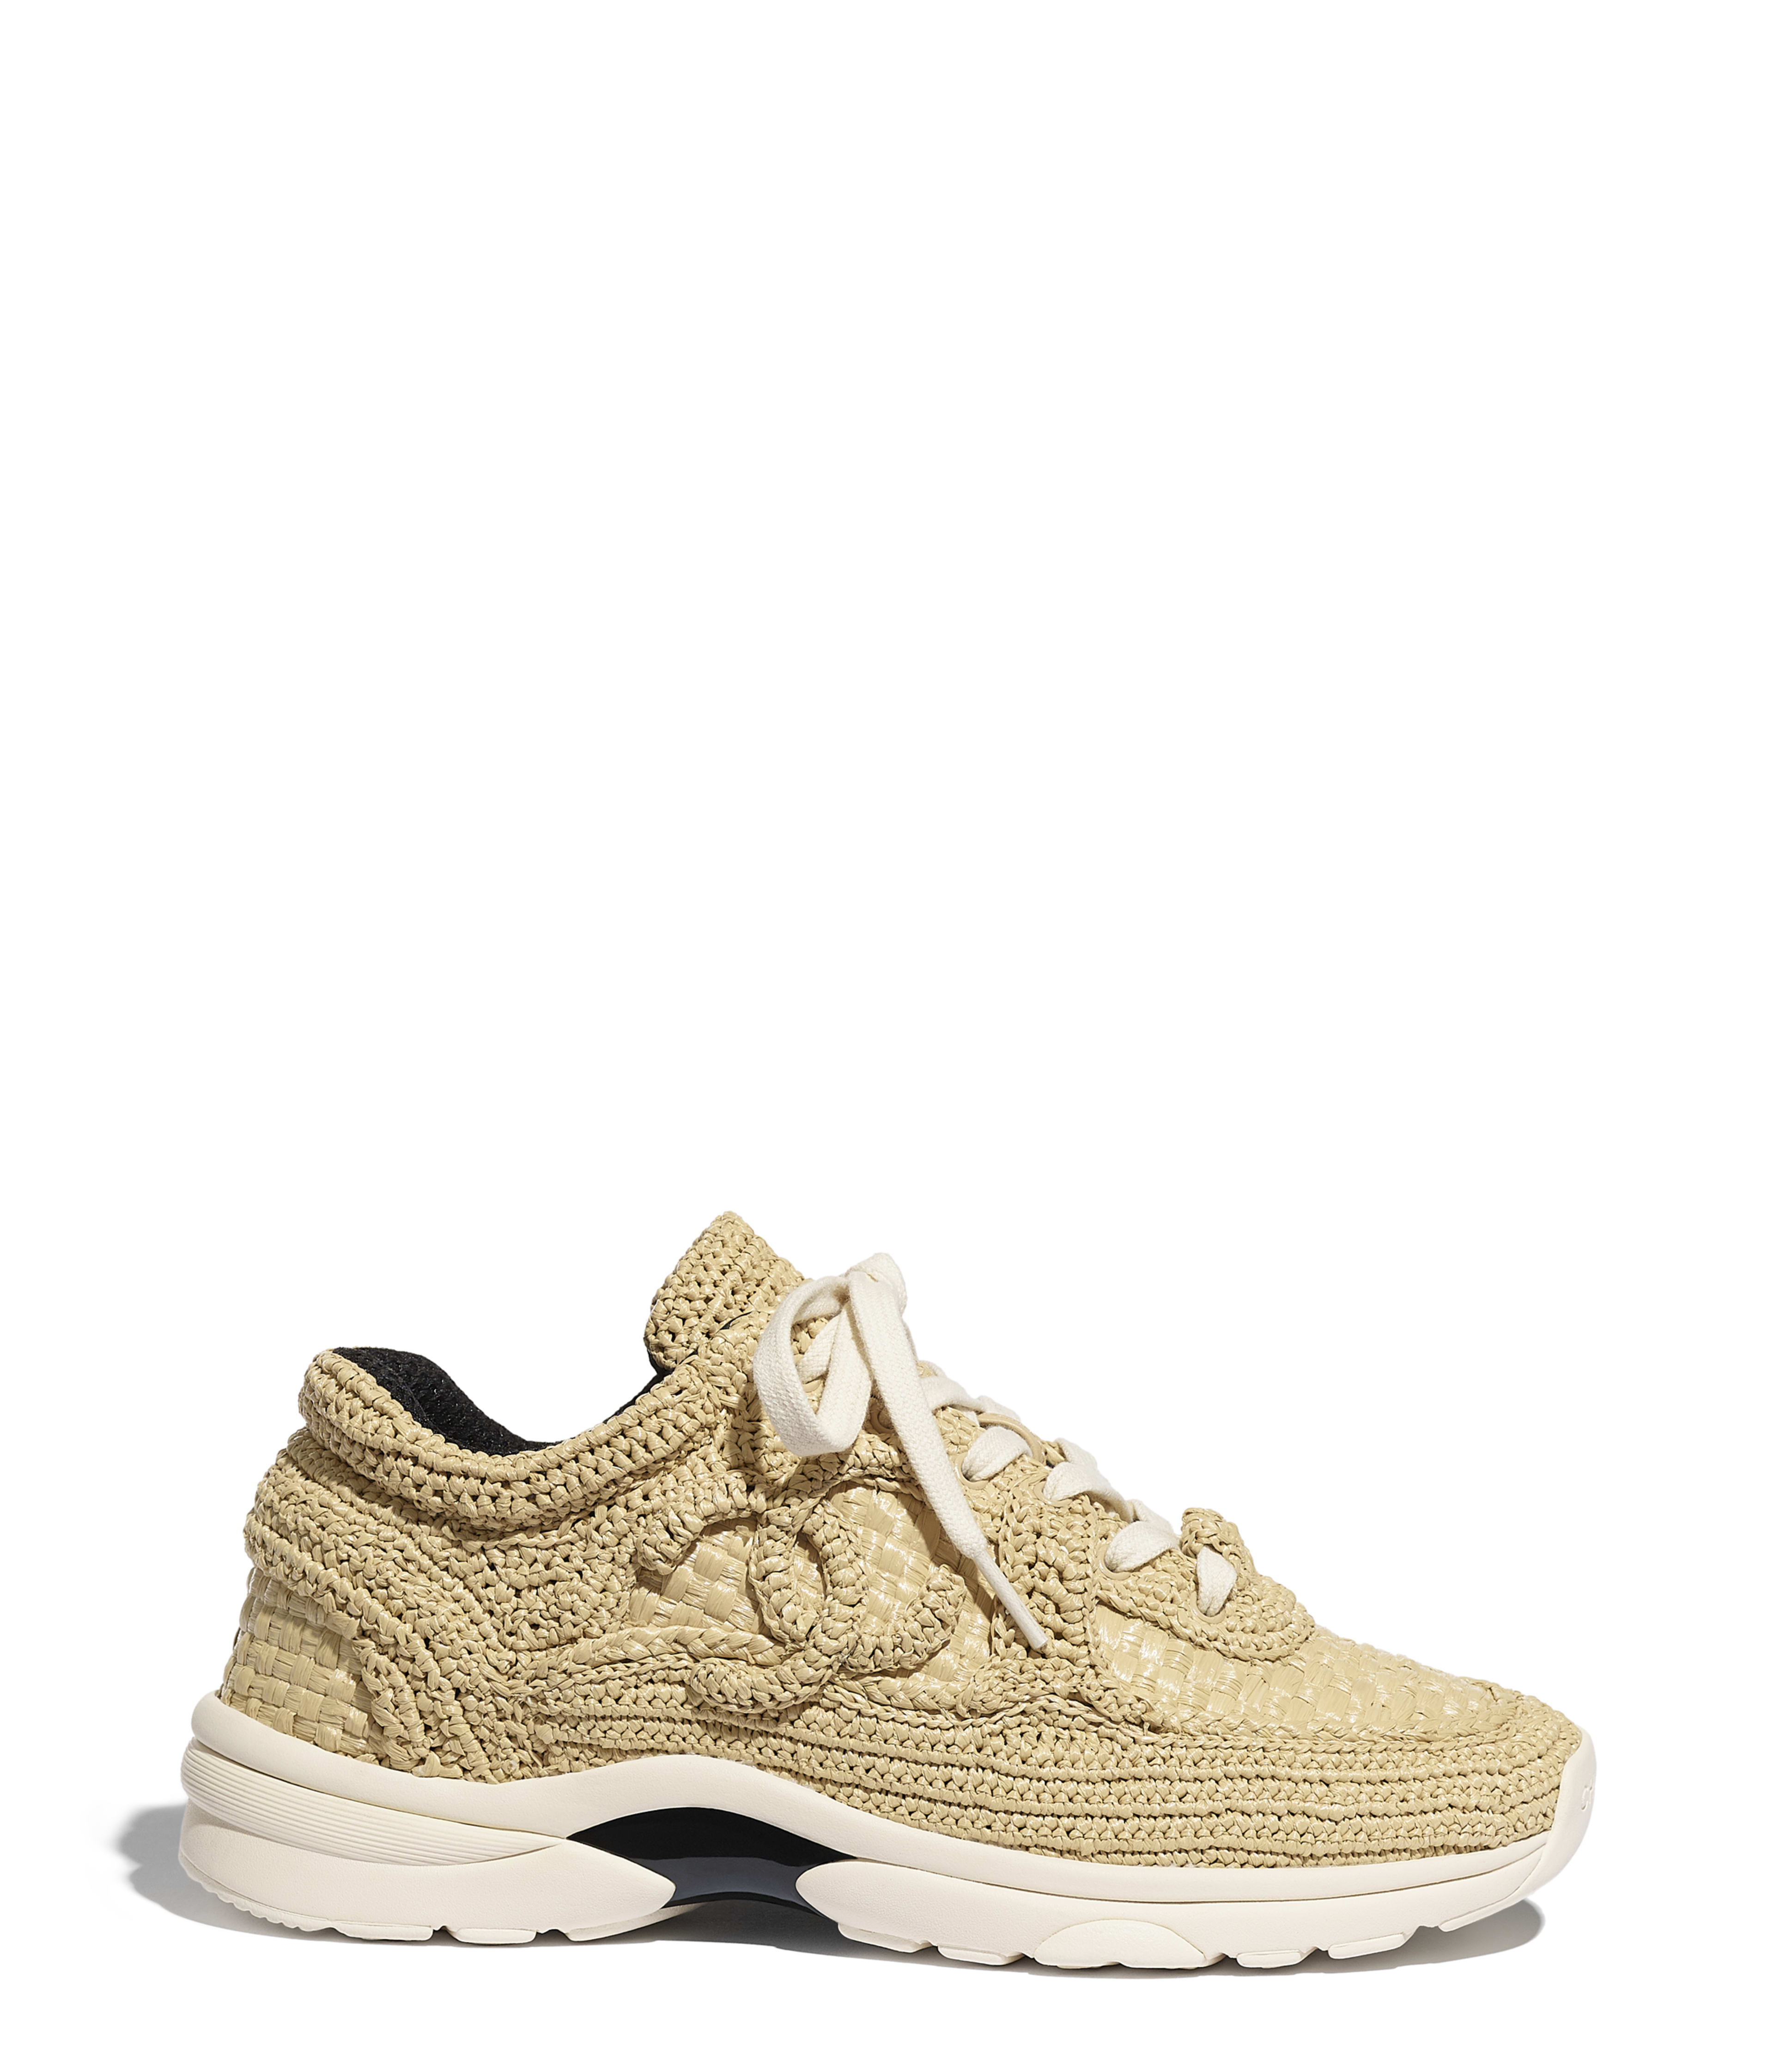 Sneakers - Shoes | CHANEL